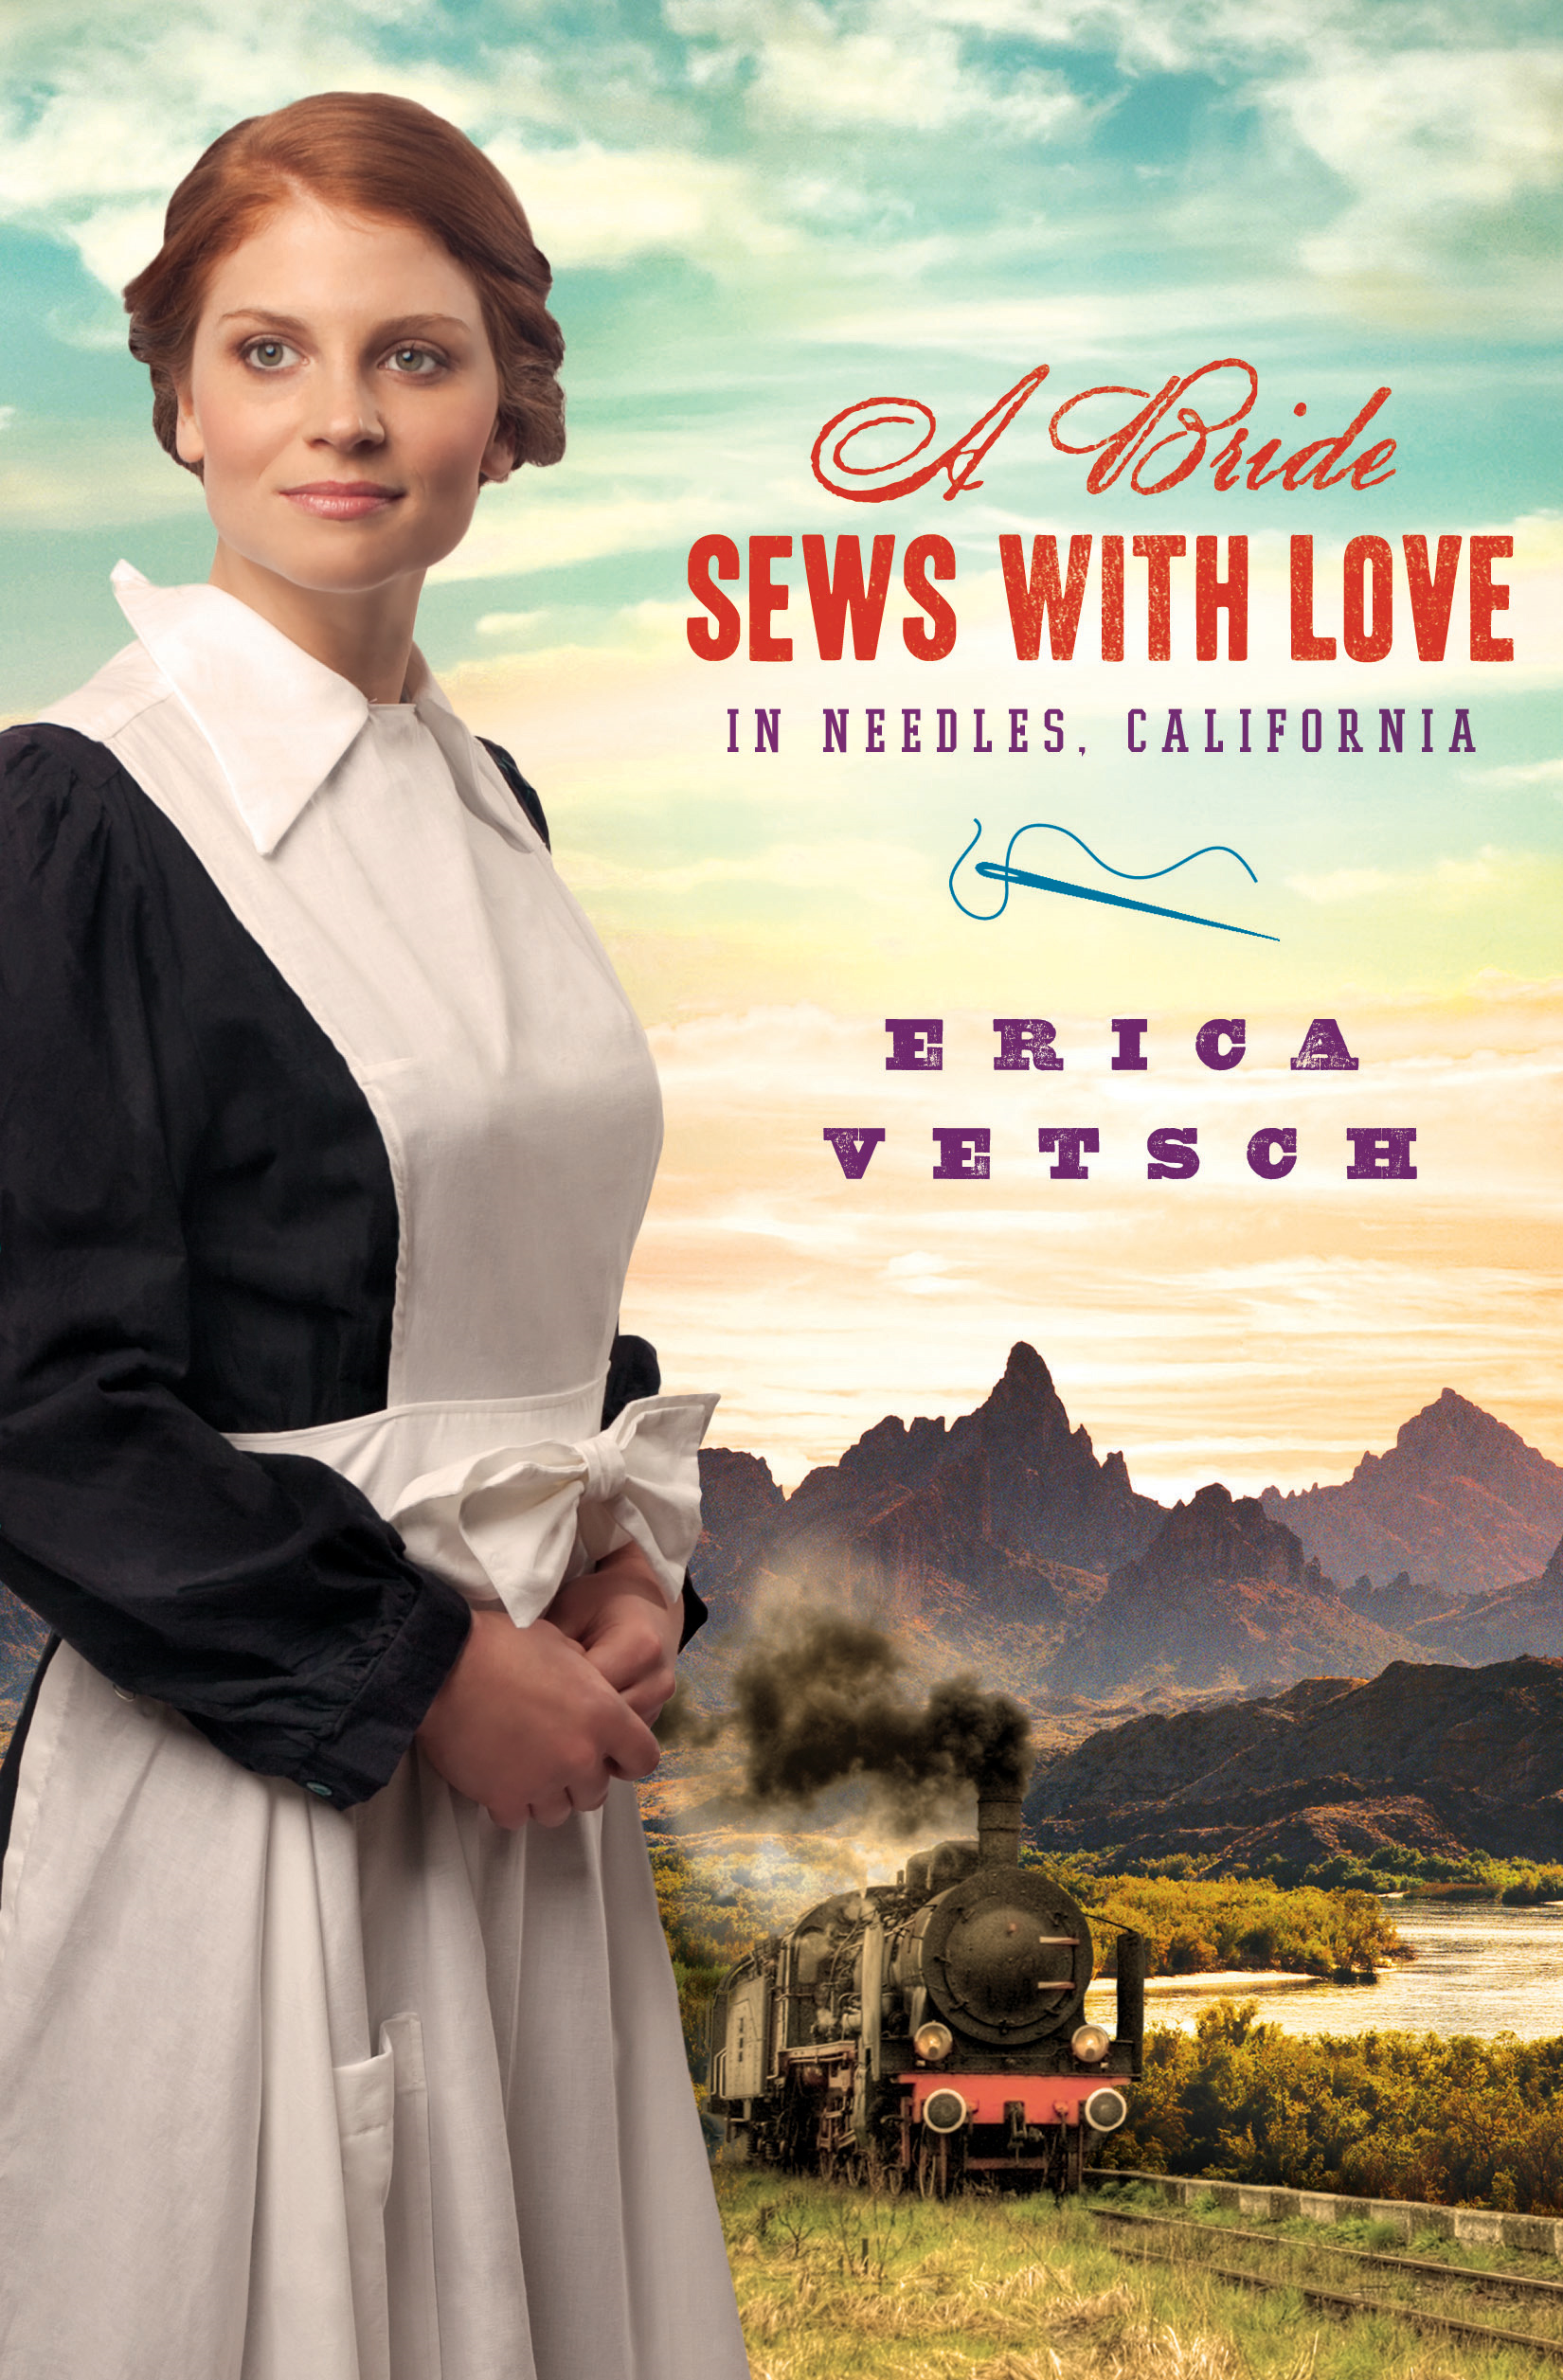 A Bride Sews with Love in Needles, California By: Erica Vetsch